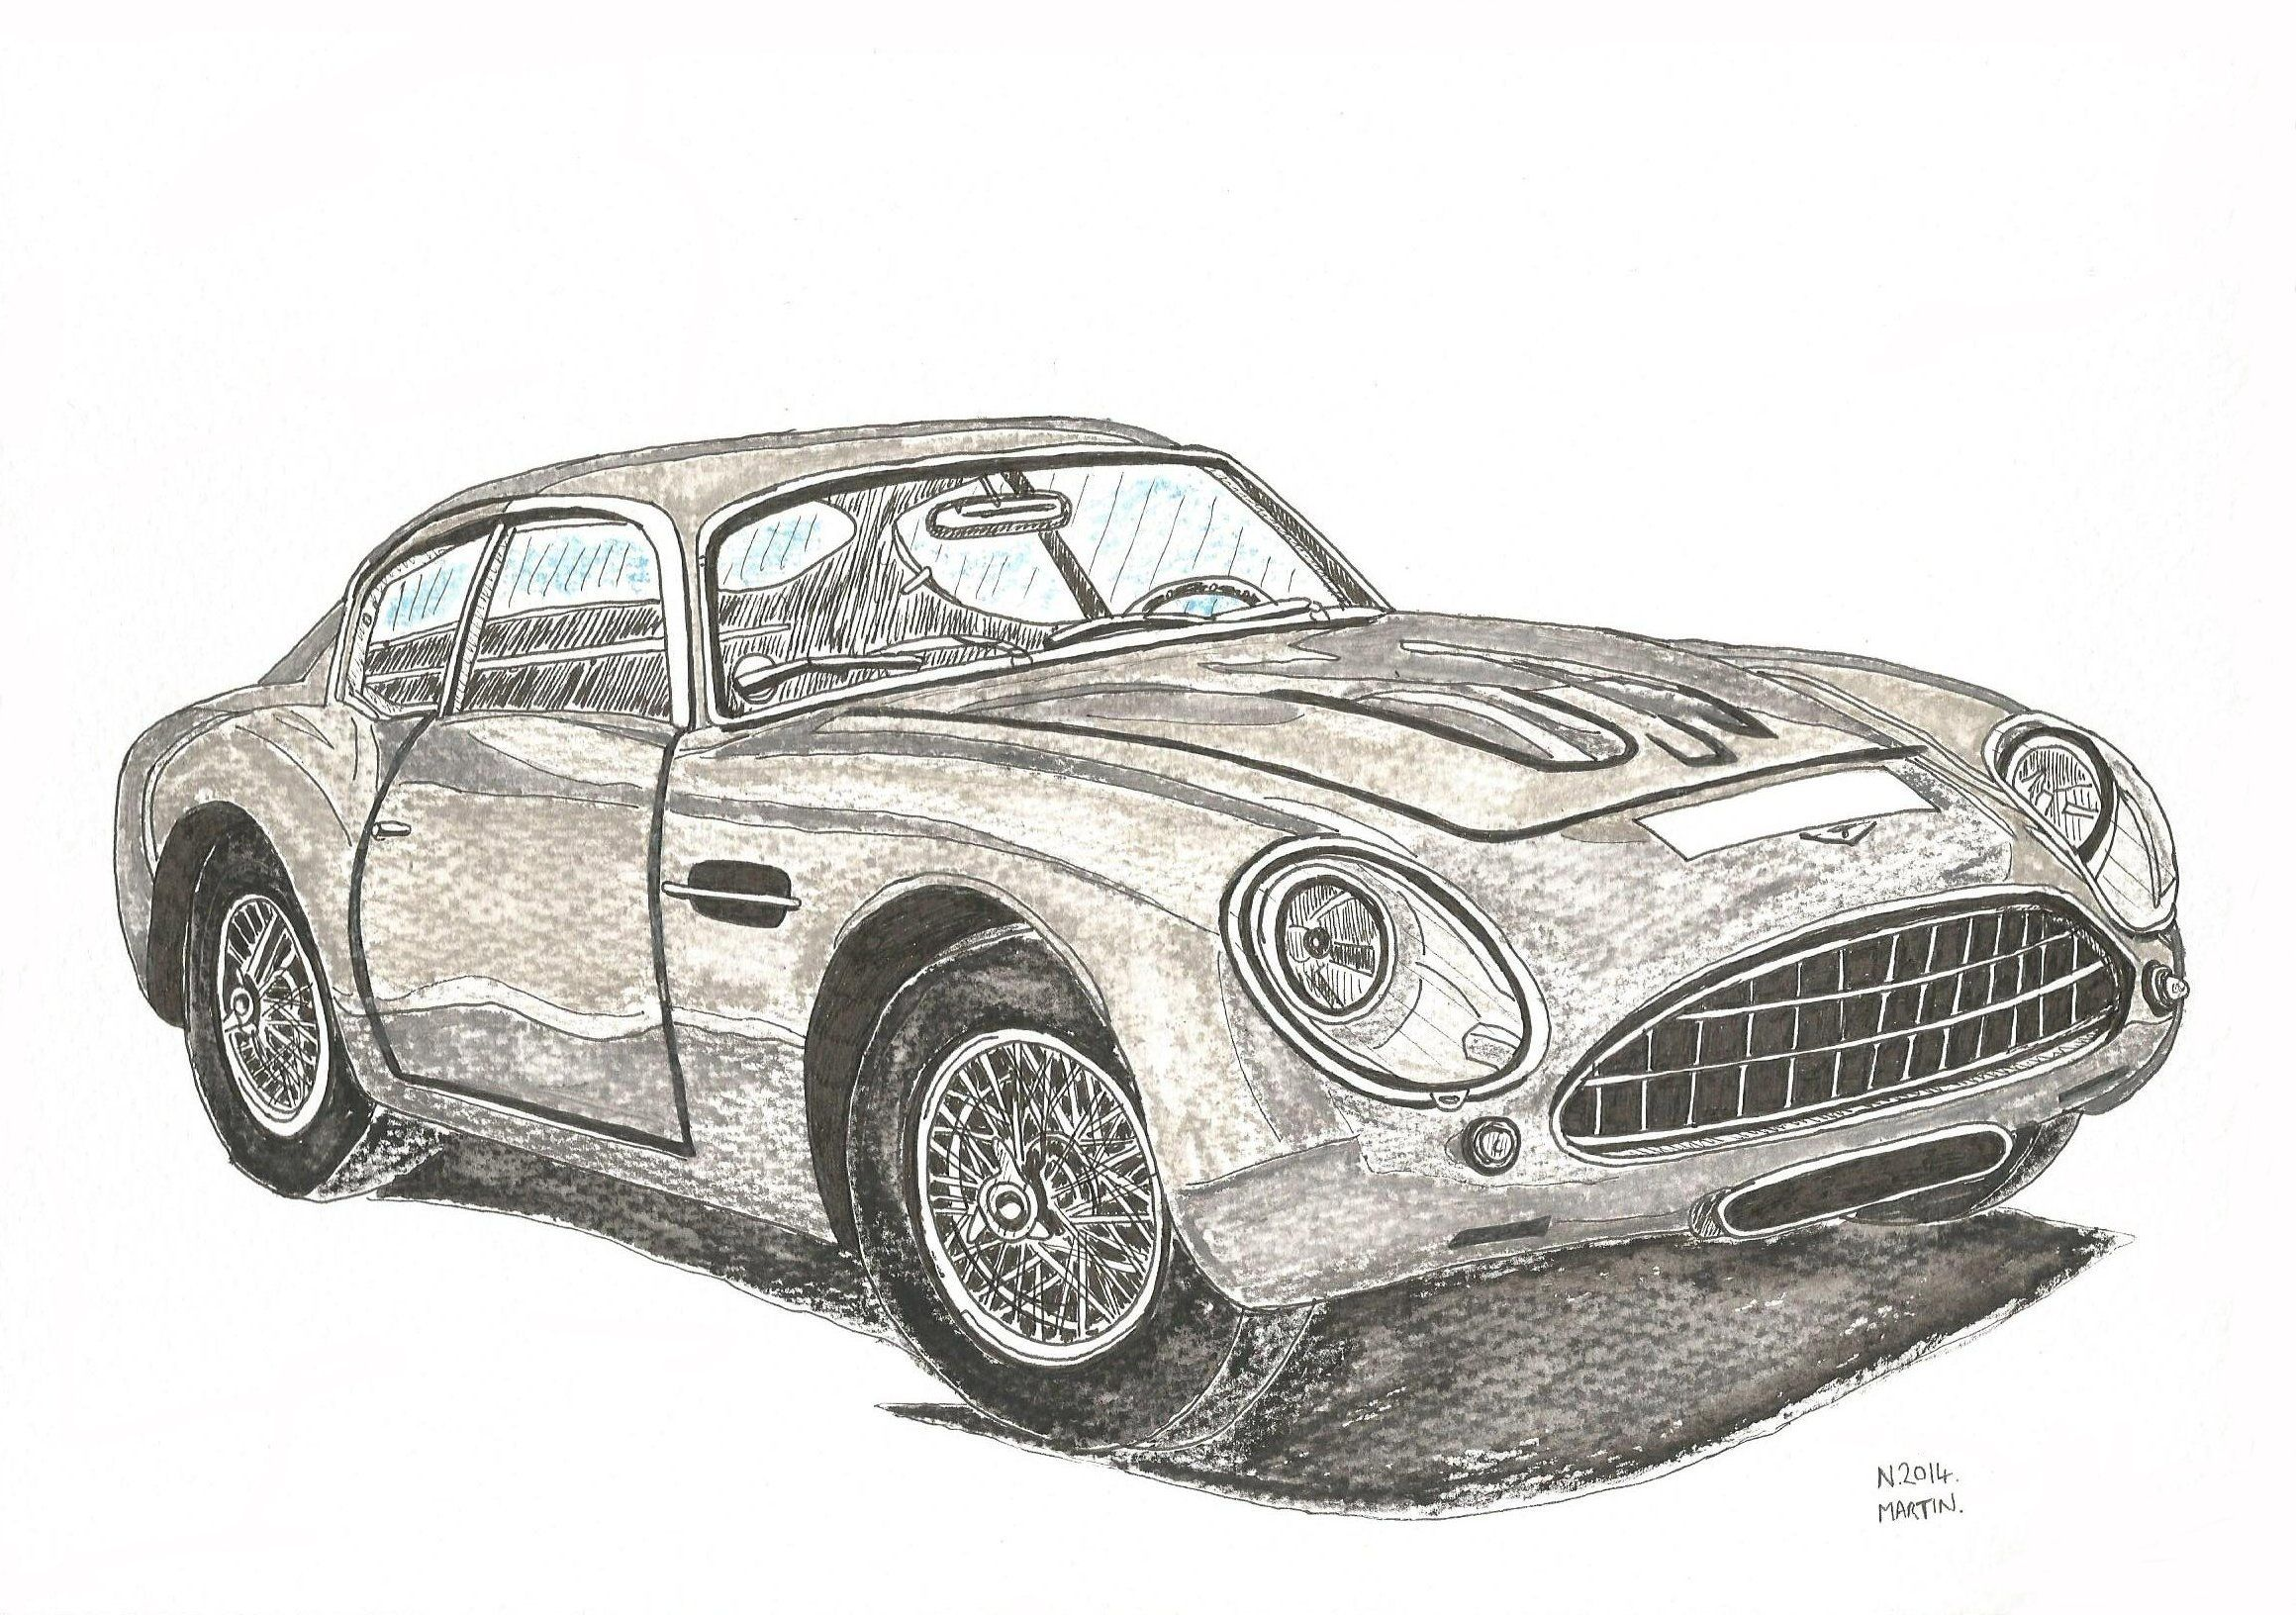 My Aston Martin DB4 Zagato hand-drawn drawing. I can also draw your ...